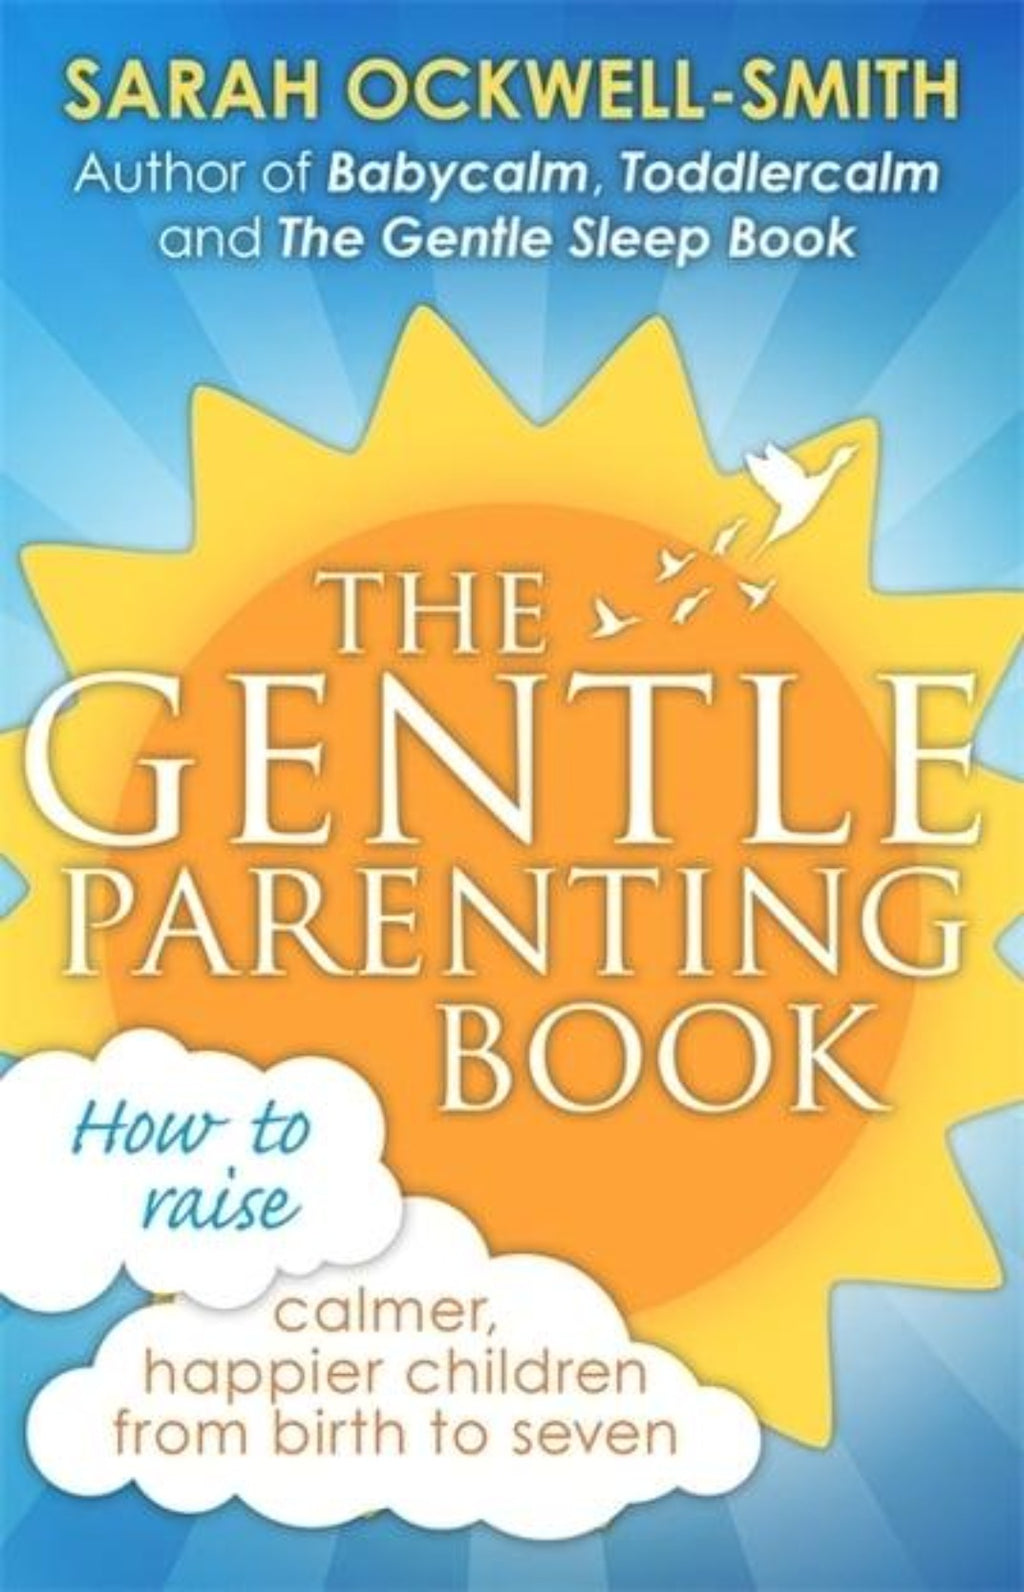 The Gentle Parenting Book : How to Raise Calmer, Happier Children from Birth to Seven